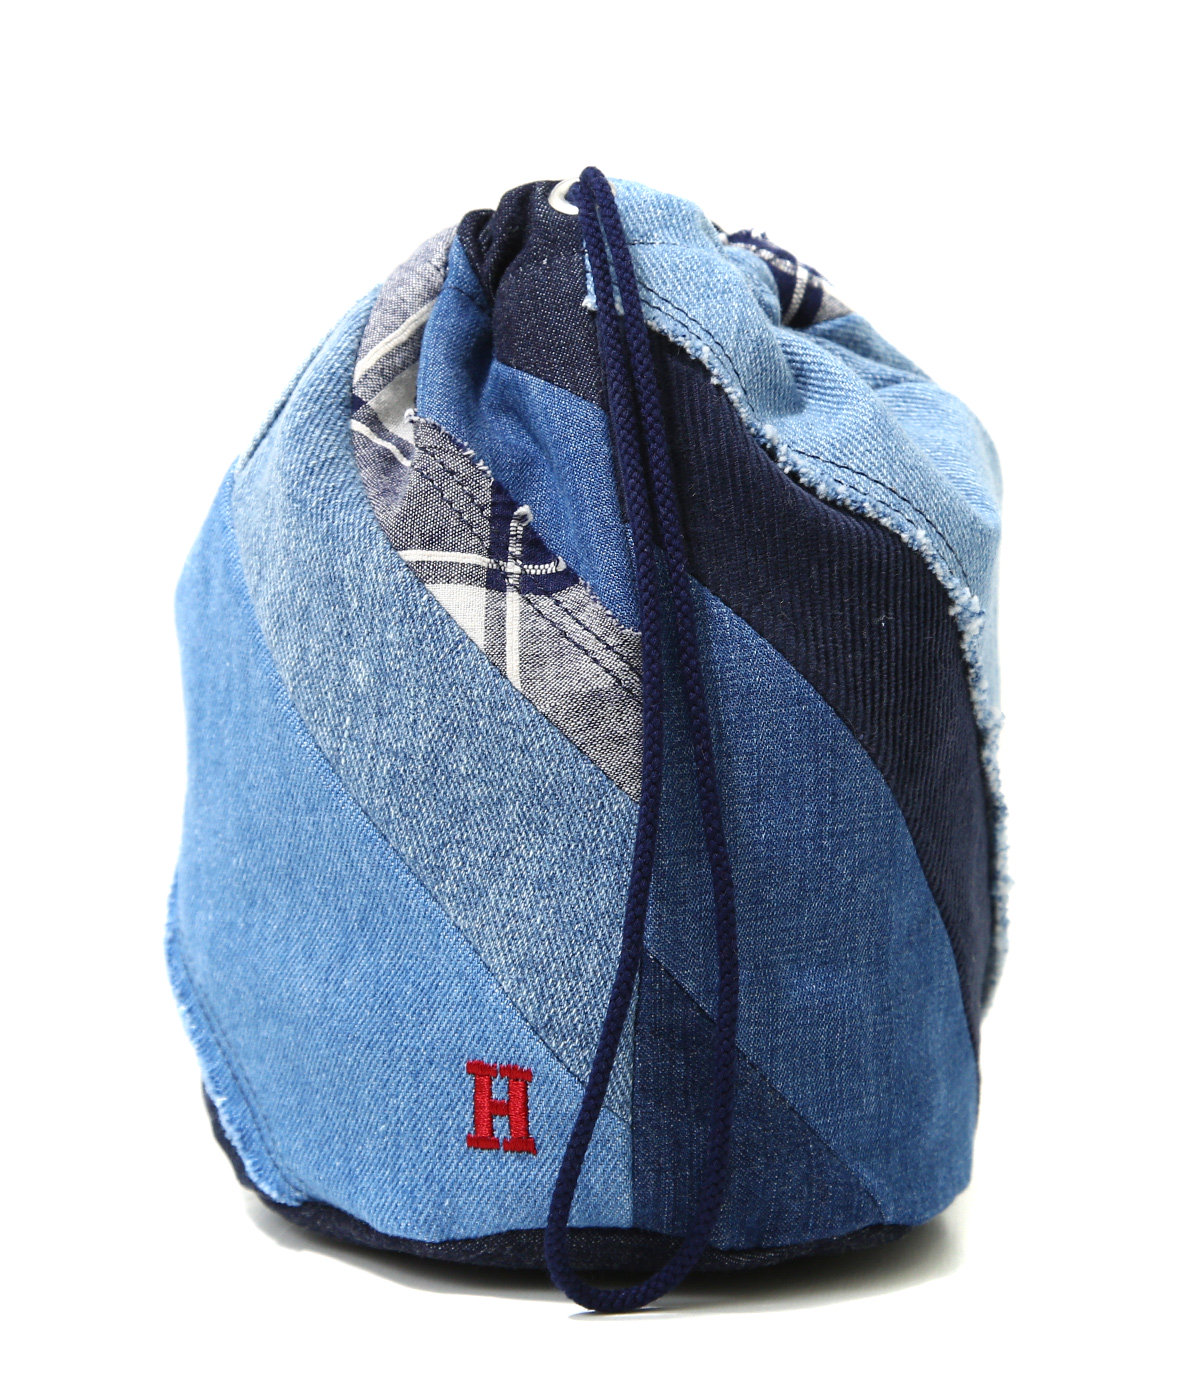 HRR RBG258 MIX PTW PERSONAL EFFECTS BAG